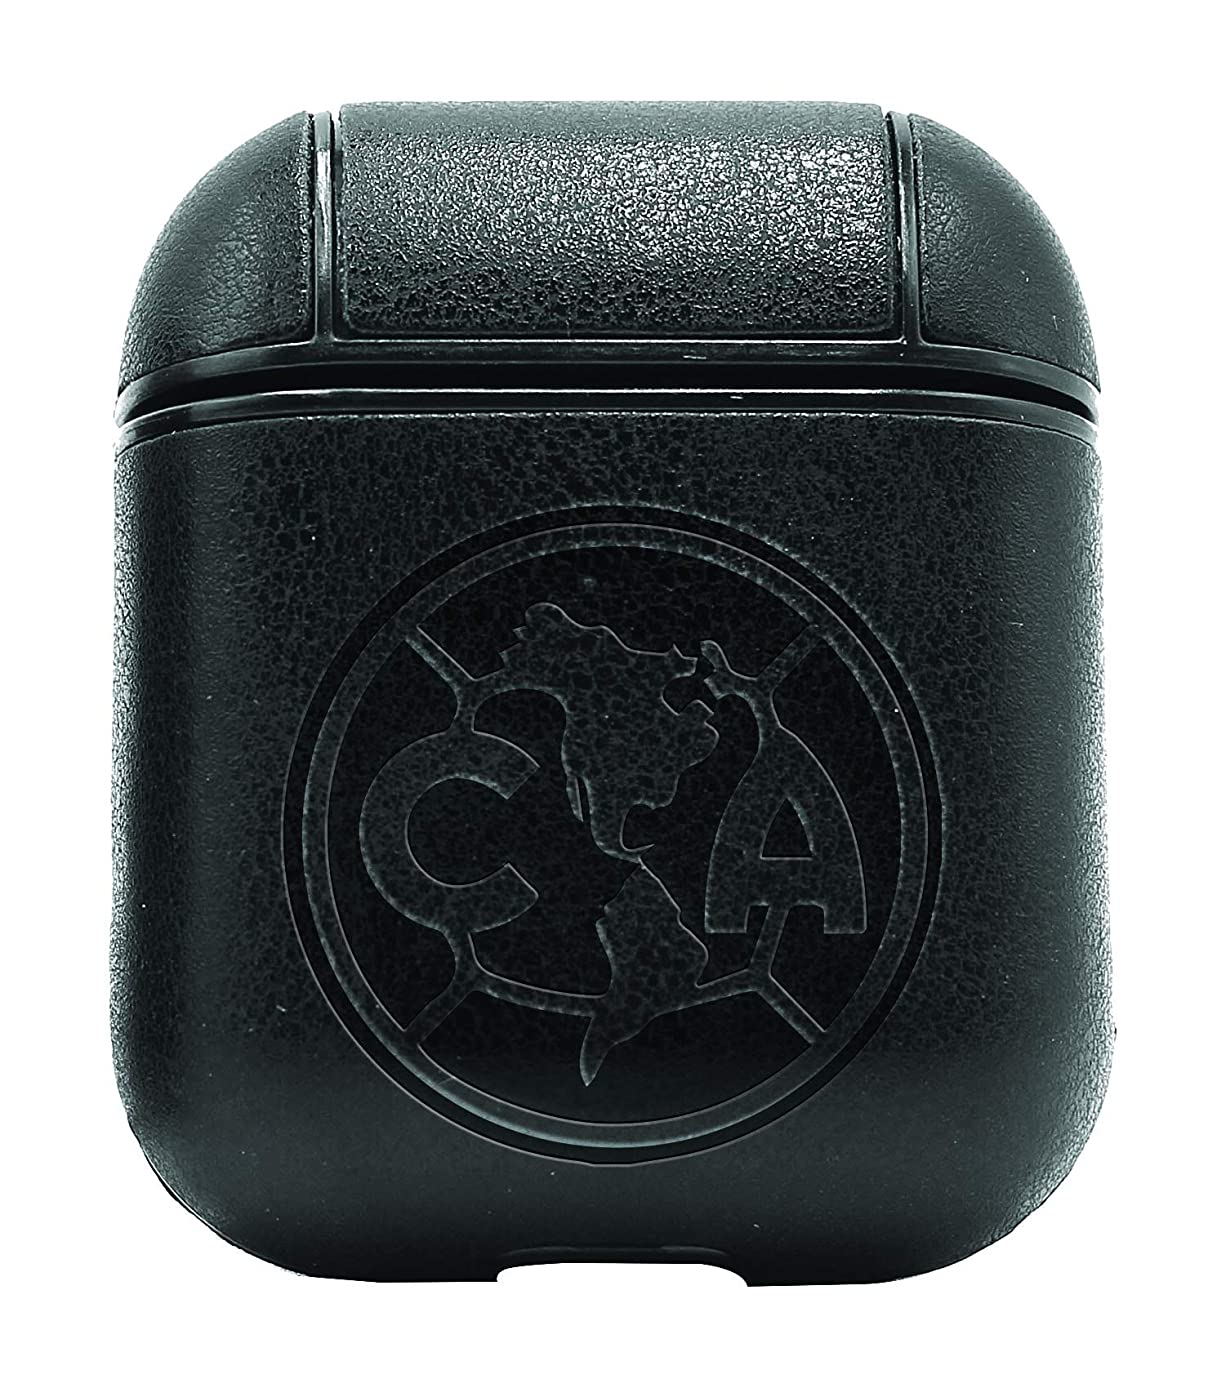 Mexico Club Soccer World Cup Football National Team (Vintage Black) Air Pods Protective Leather Case Cover - a New Class of Luxury to Your AirPods - Premium PU Leather and Handmade exquisitely